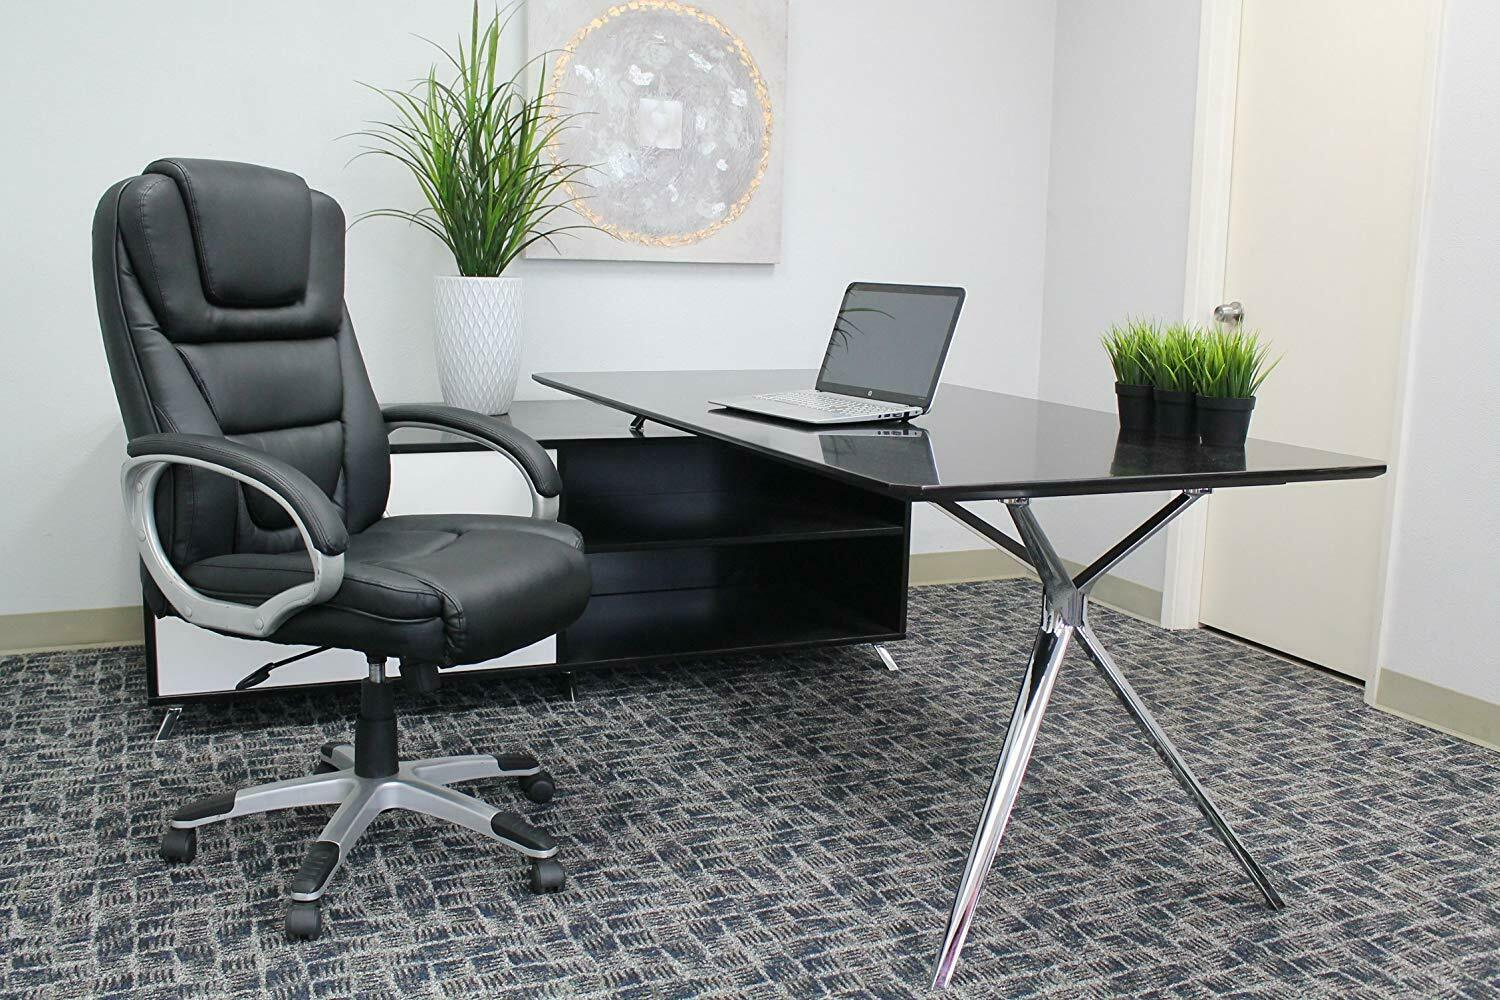 desk chair office computer gaming leather executive